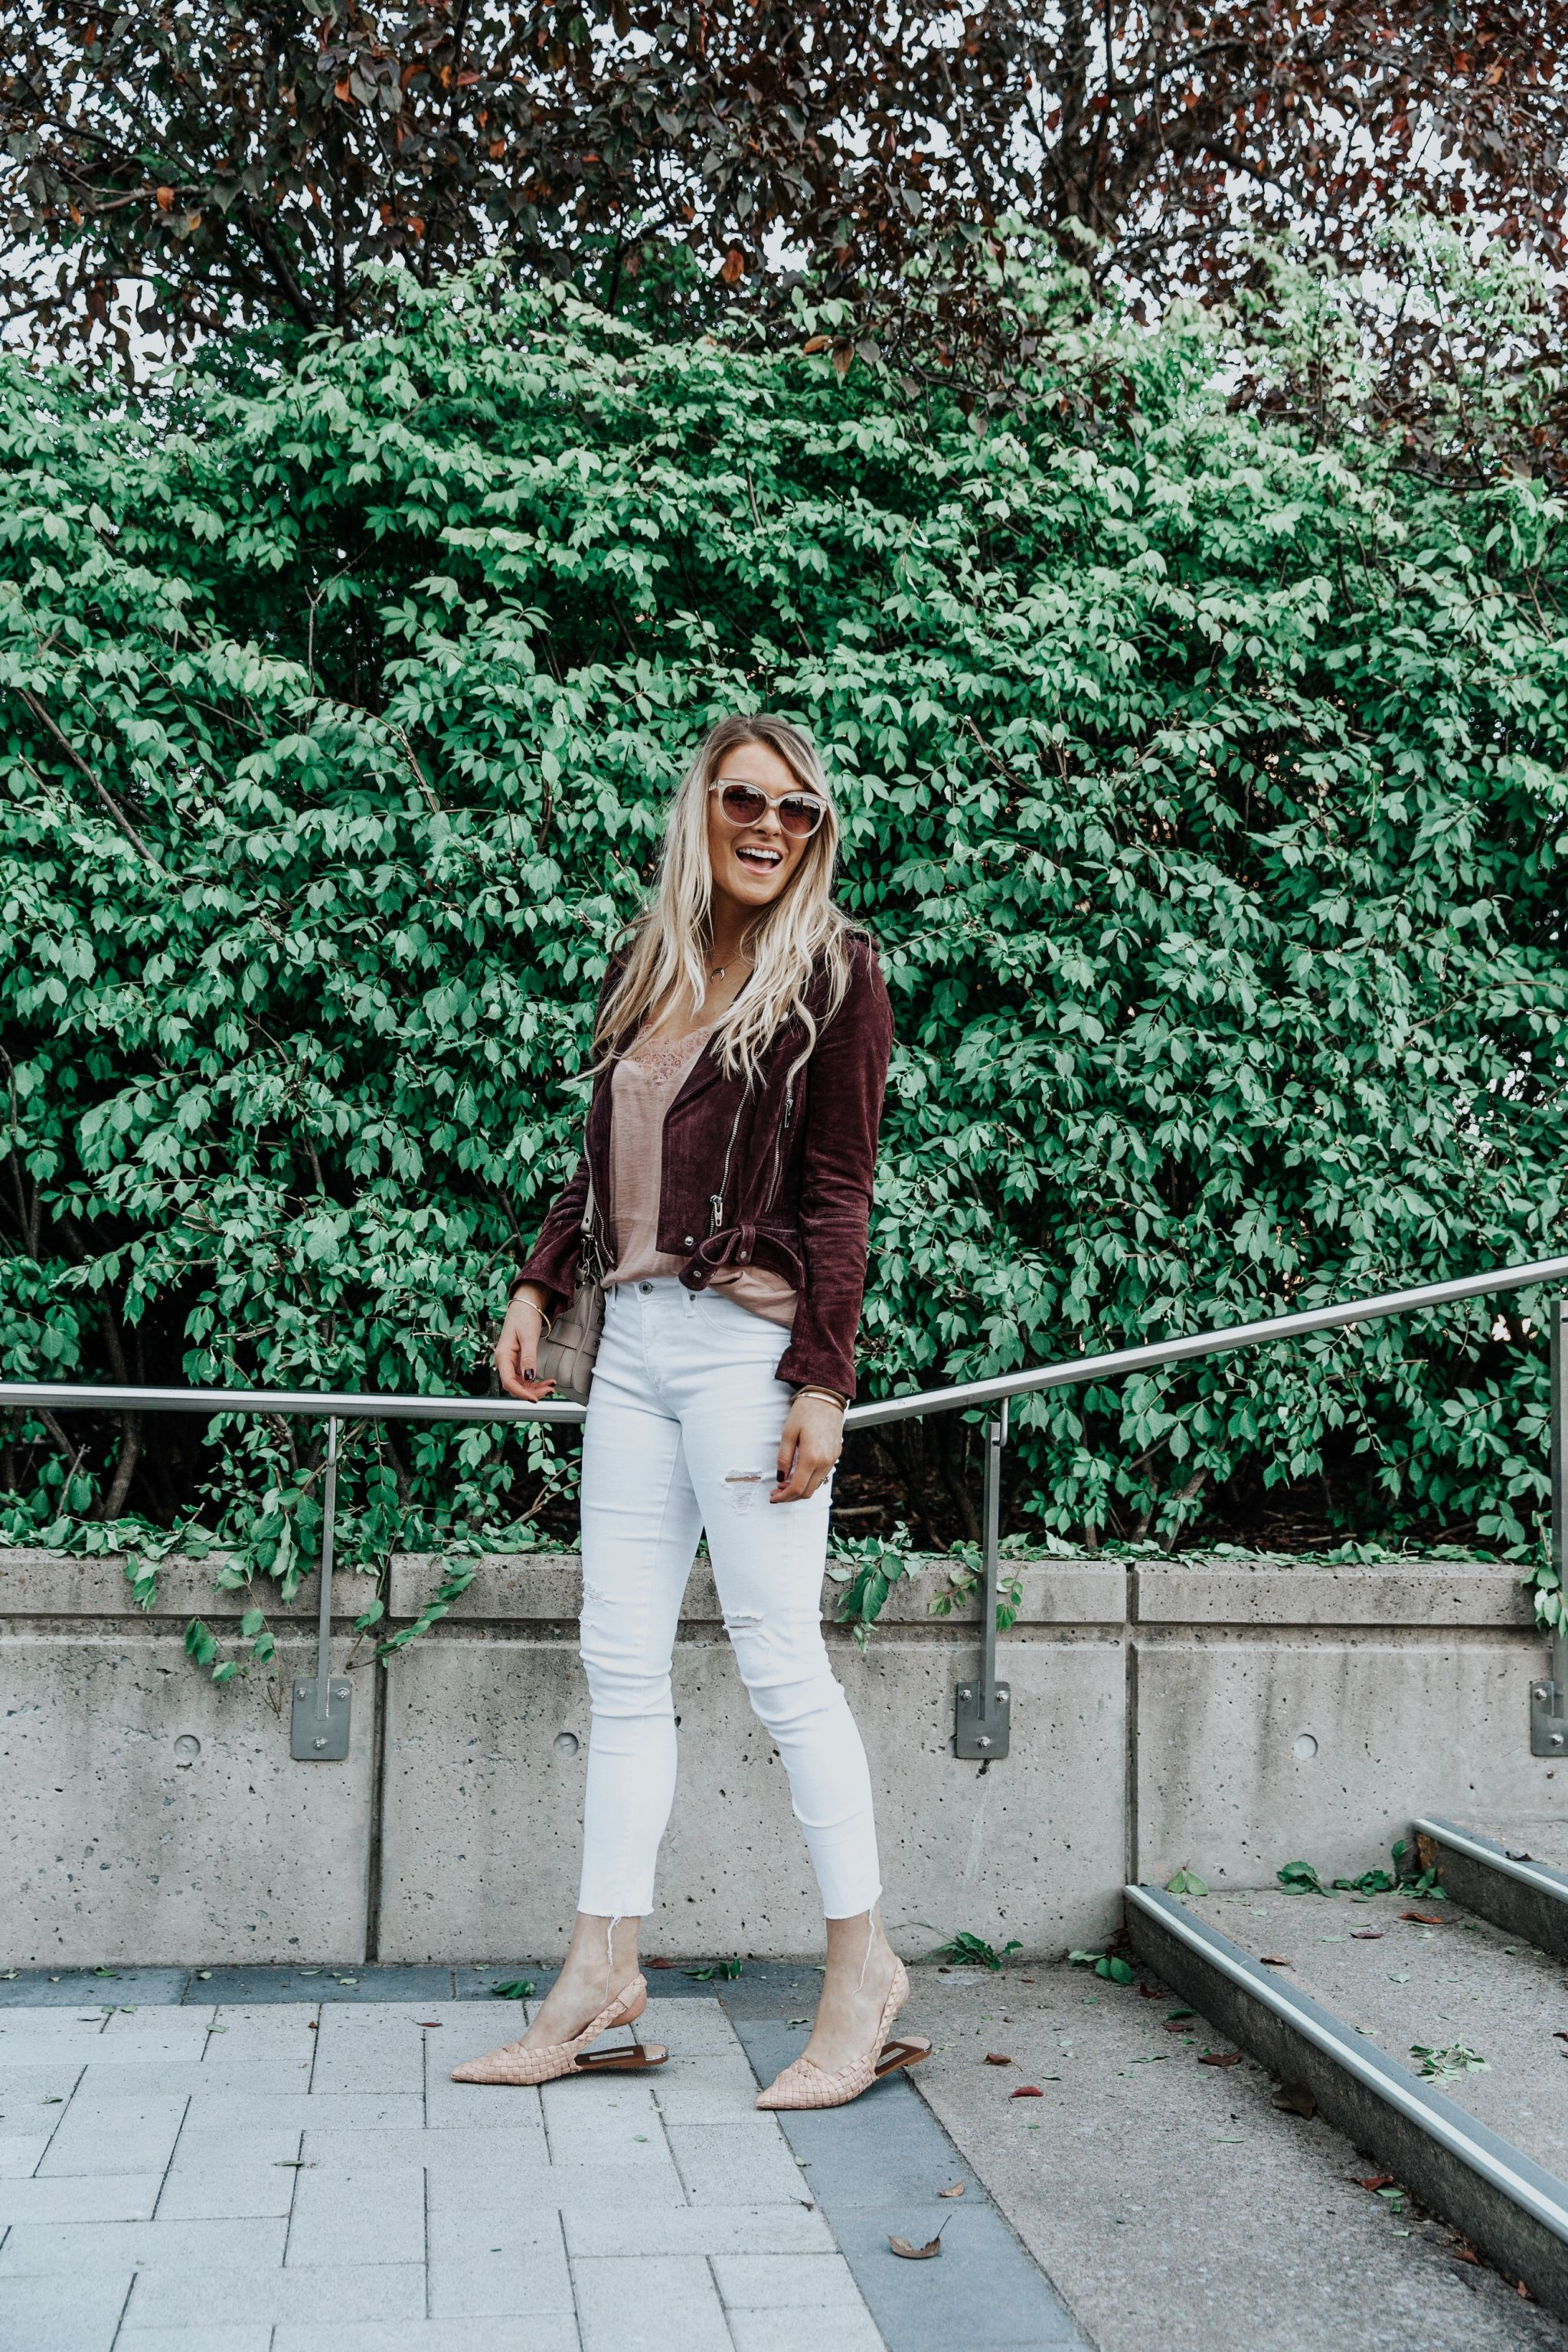 1 person, ottawa fashion blogger in white pants